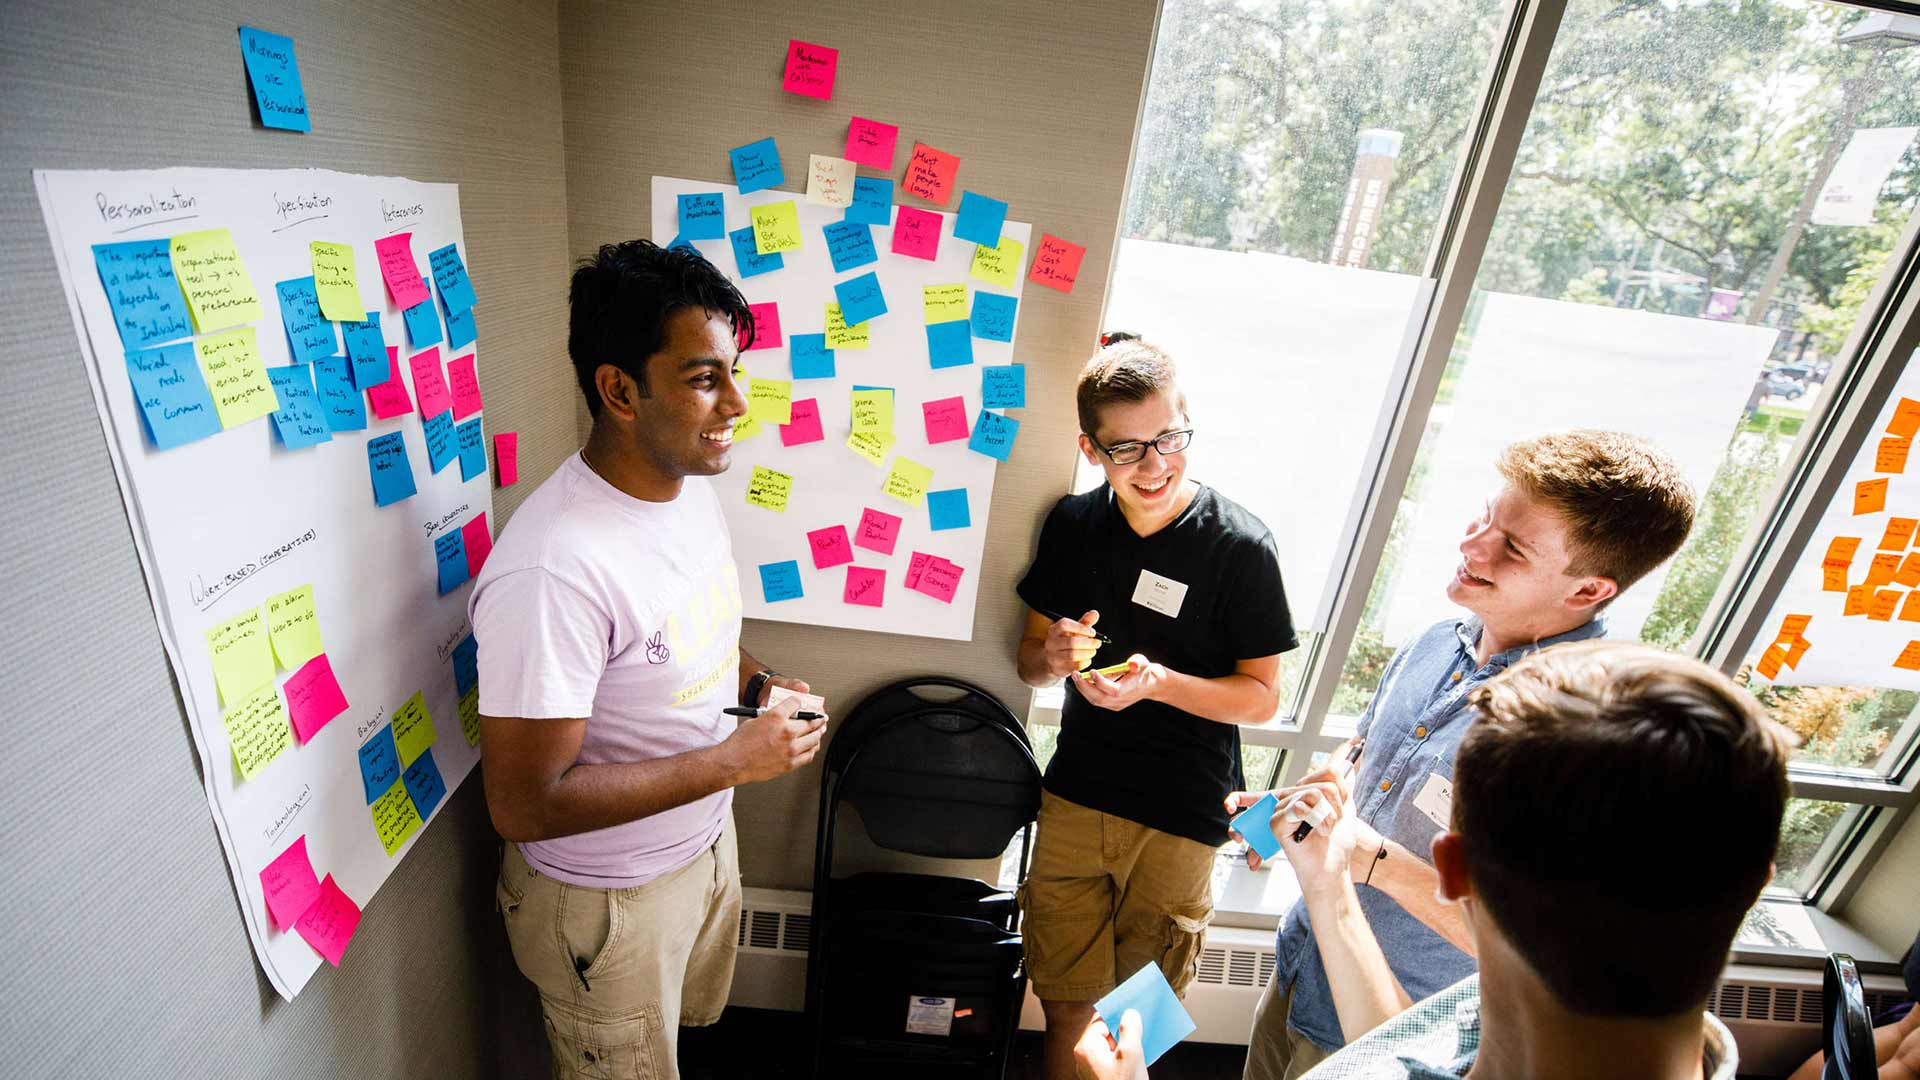 Four students brainstorm on post-it notes.